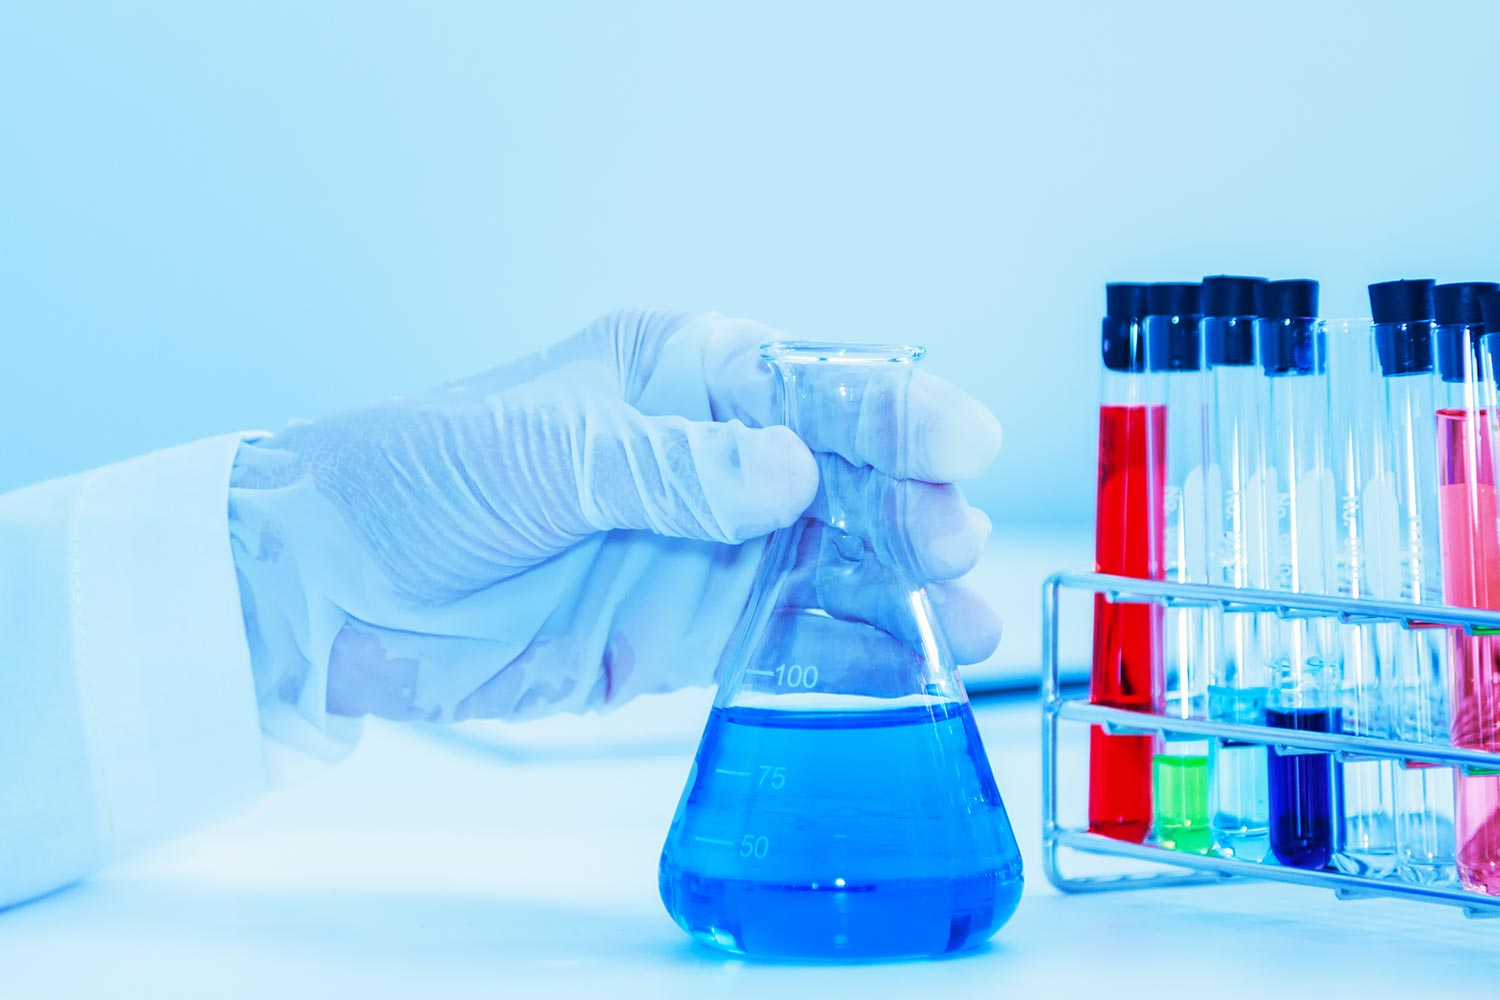 datacor_industries_fine_speciality_chemicals.jpg